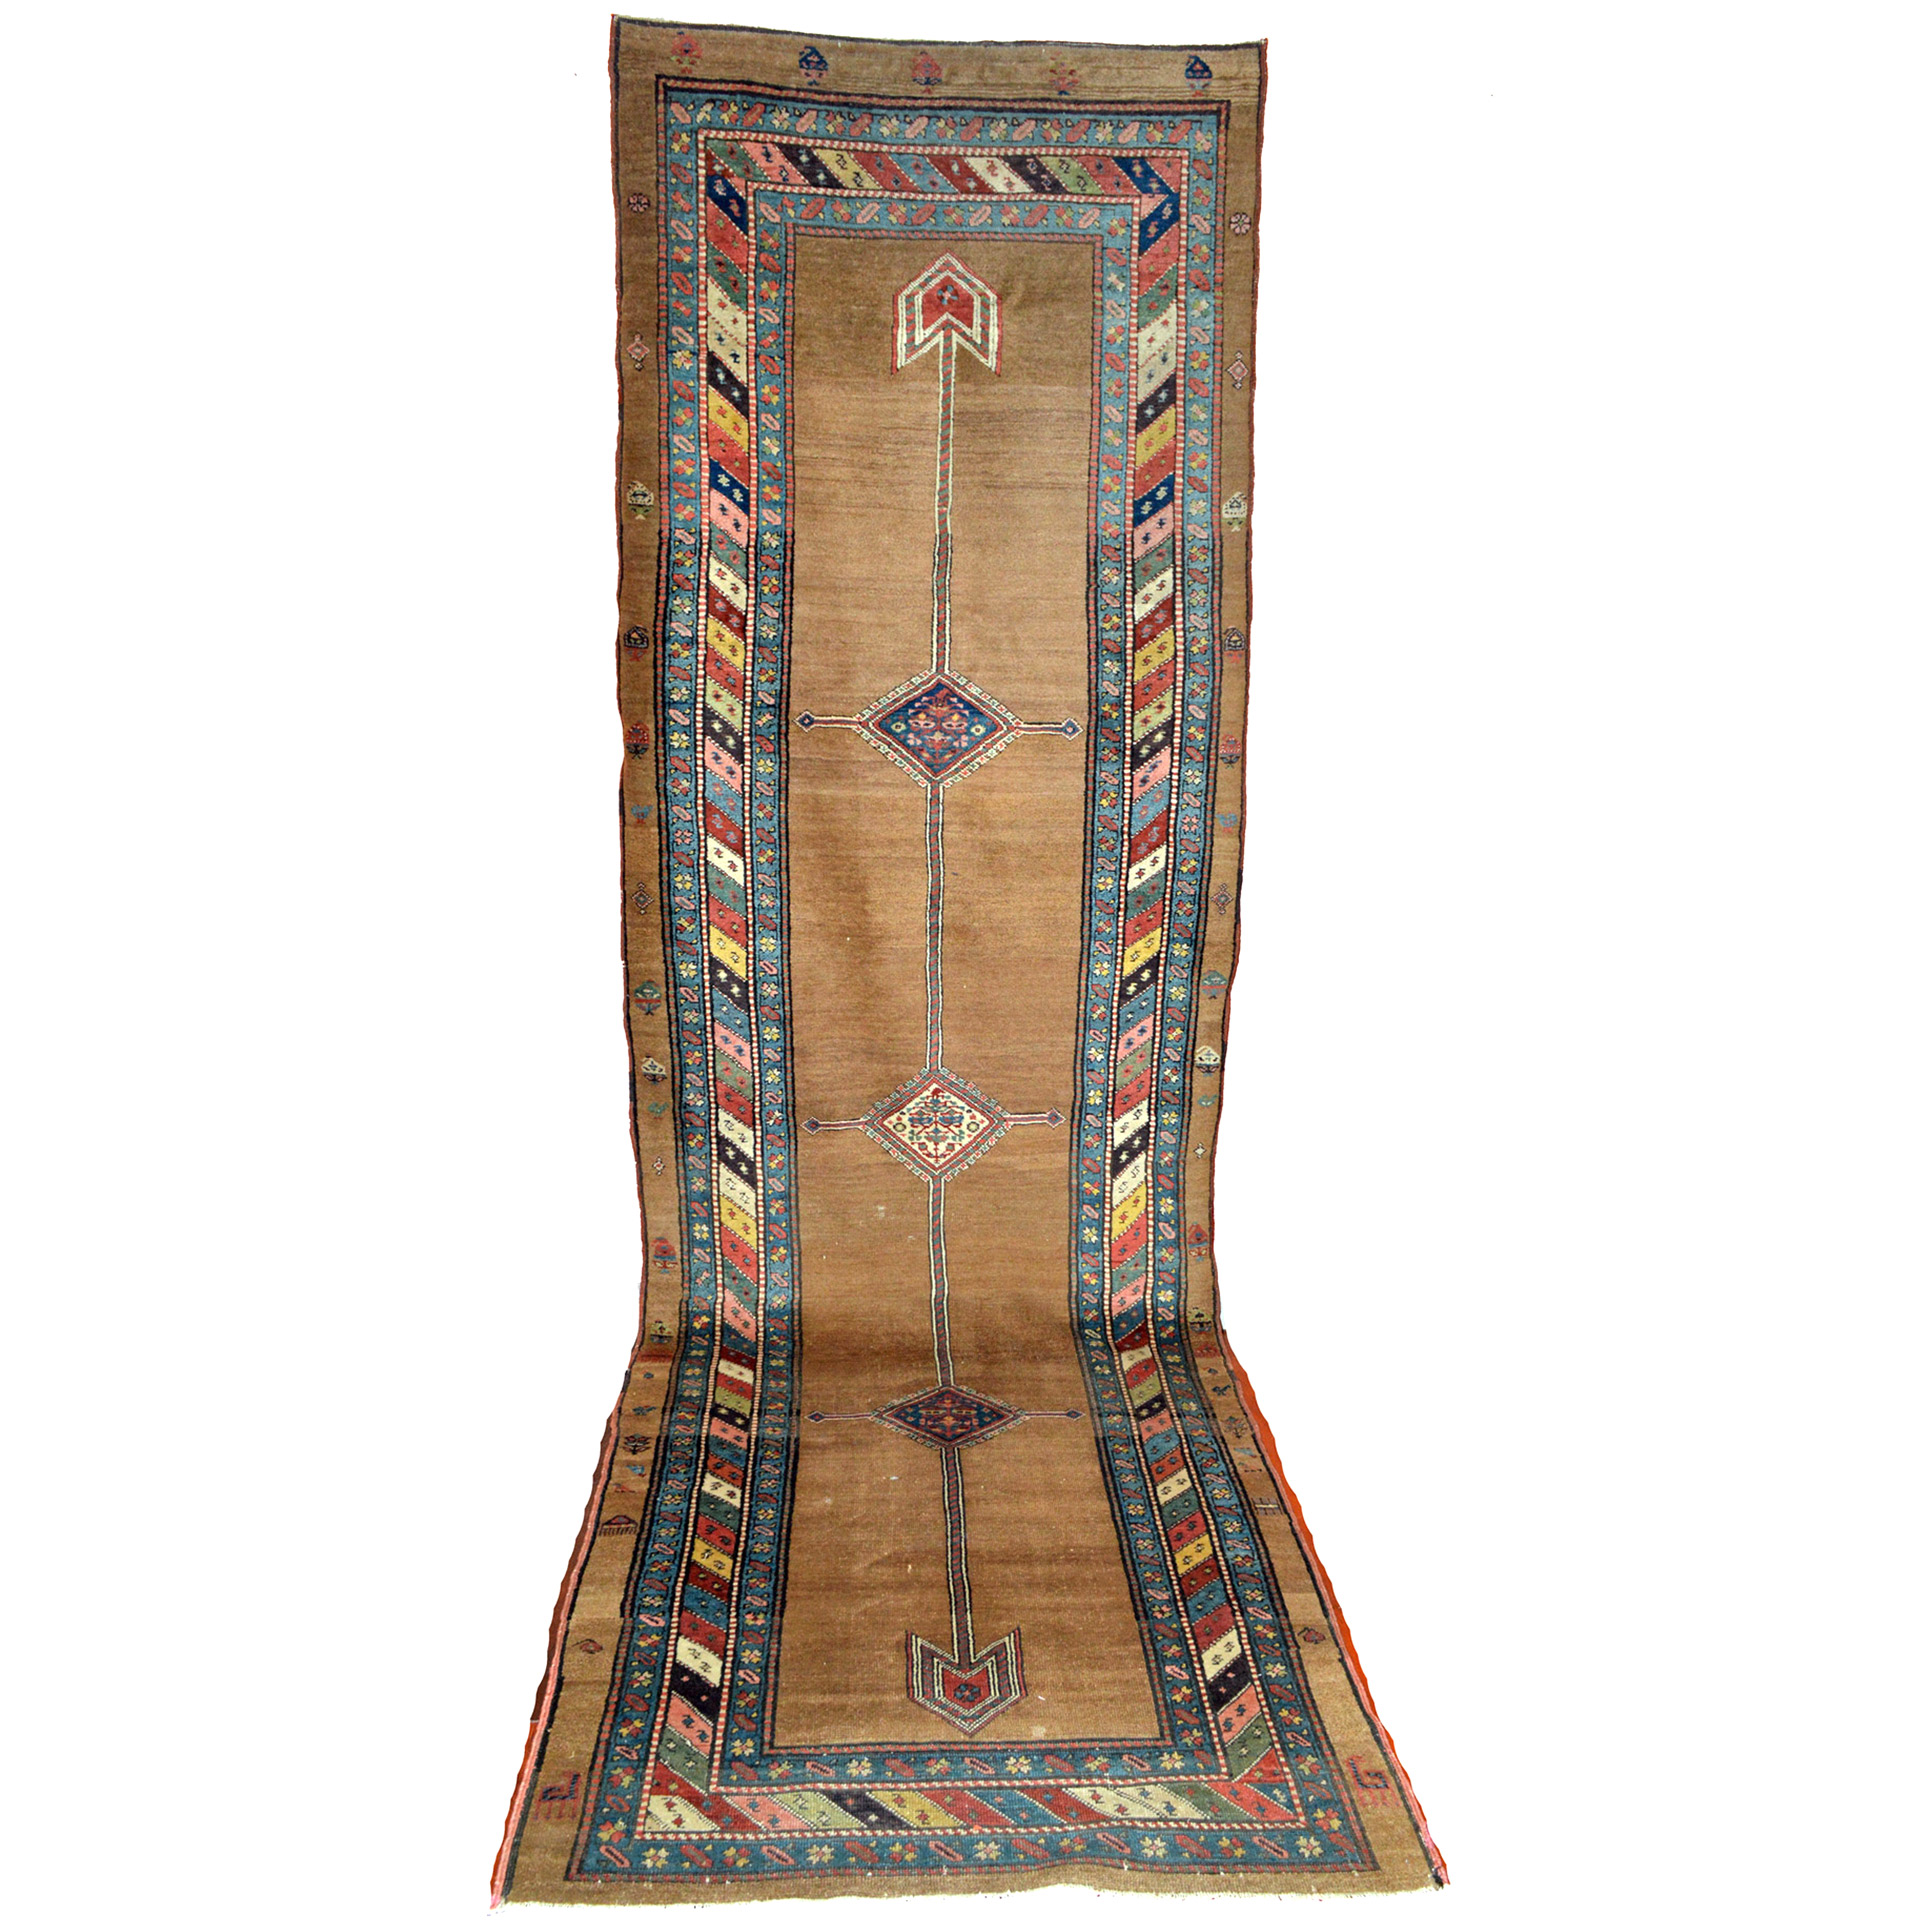 Antique Bakshaish runner from the Heriz district in northwest Persia, with a camel color open field design